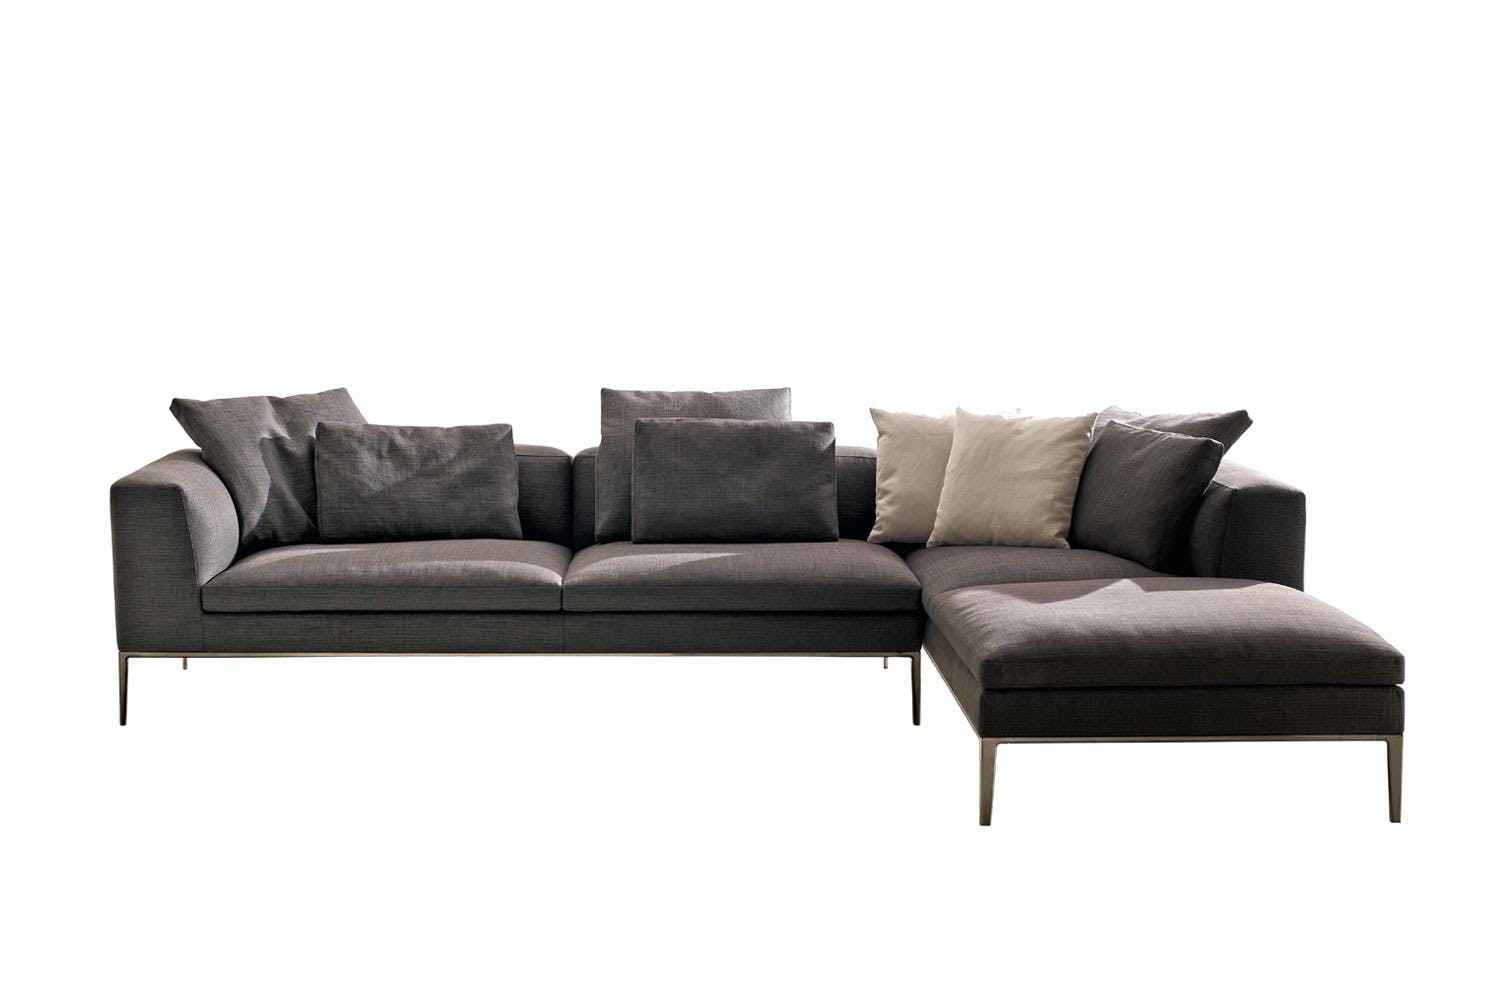 michel sofa by antonio citterio for b b italia space furniture. Black Bedroom Furniture Sets. Home Design Ideas